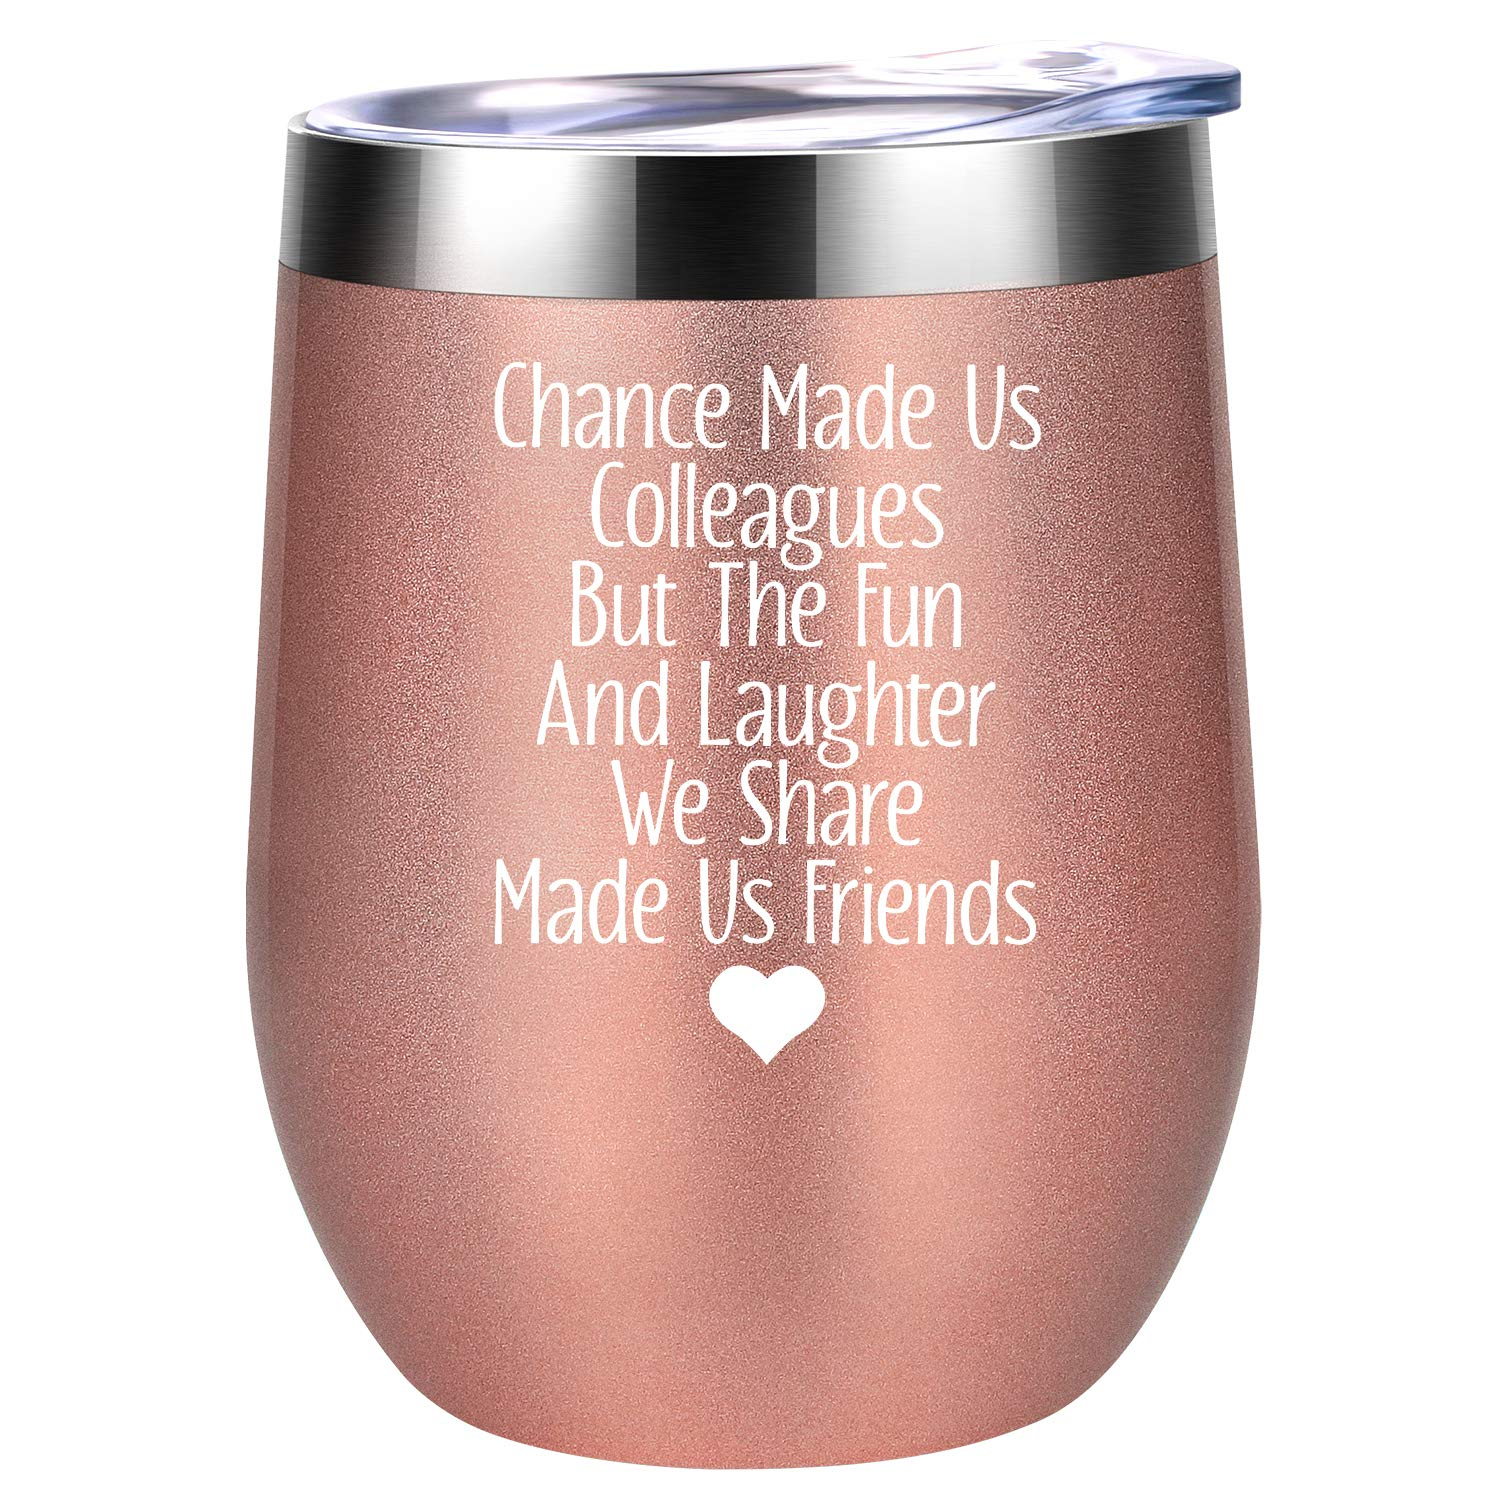 Gifts For Coworkers Coworker Christmas Gifts For Women Chance Made Us Colleagues Funny Office Gifts For Coworkers Birthday Going Away Gifts Ideas For Female Coworkers Coolife Wine